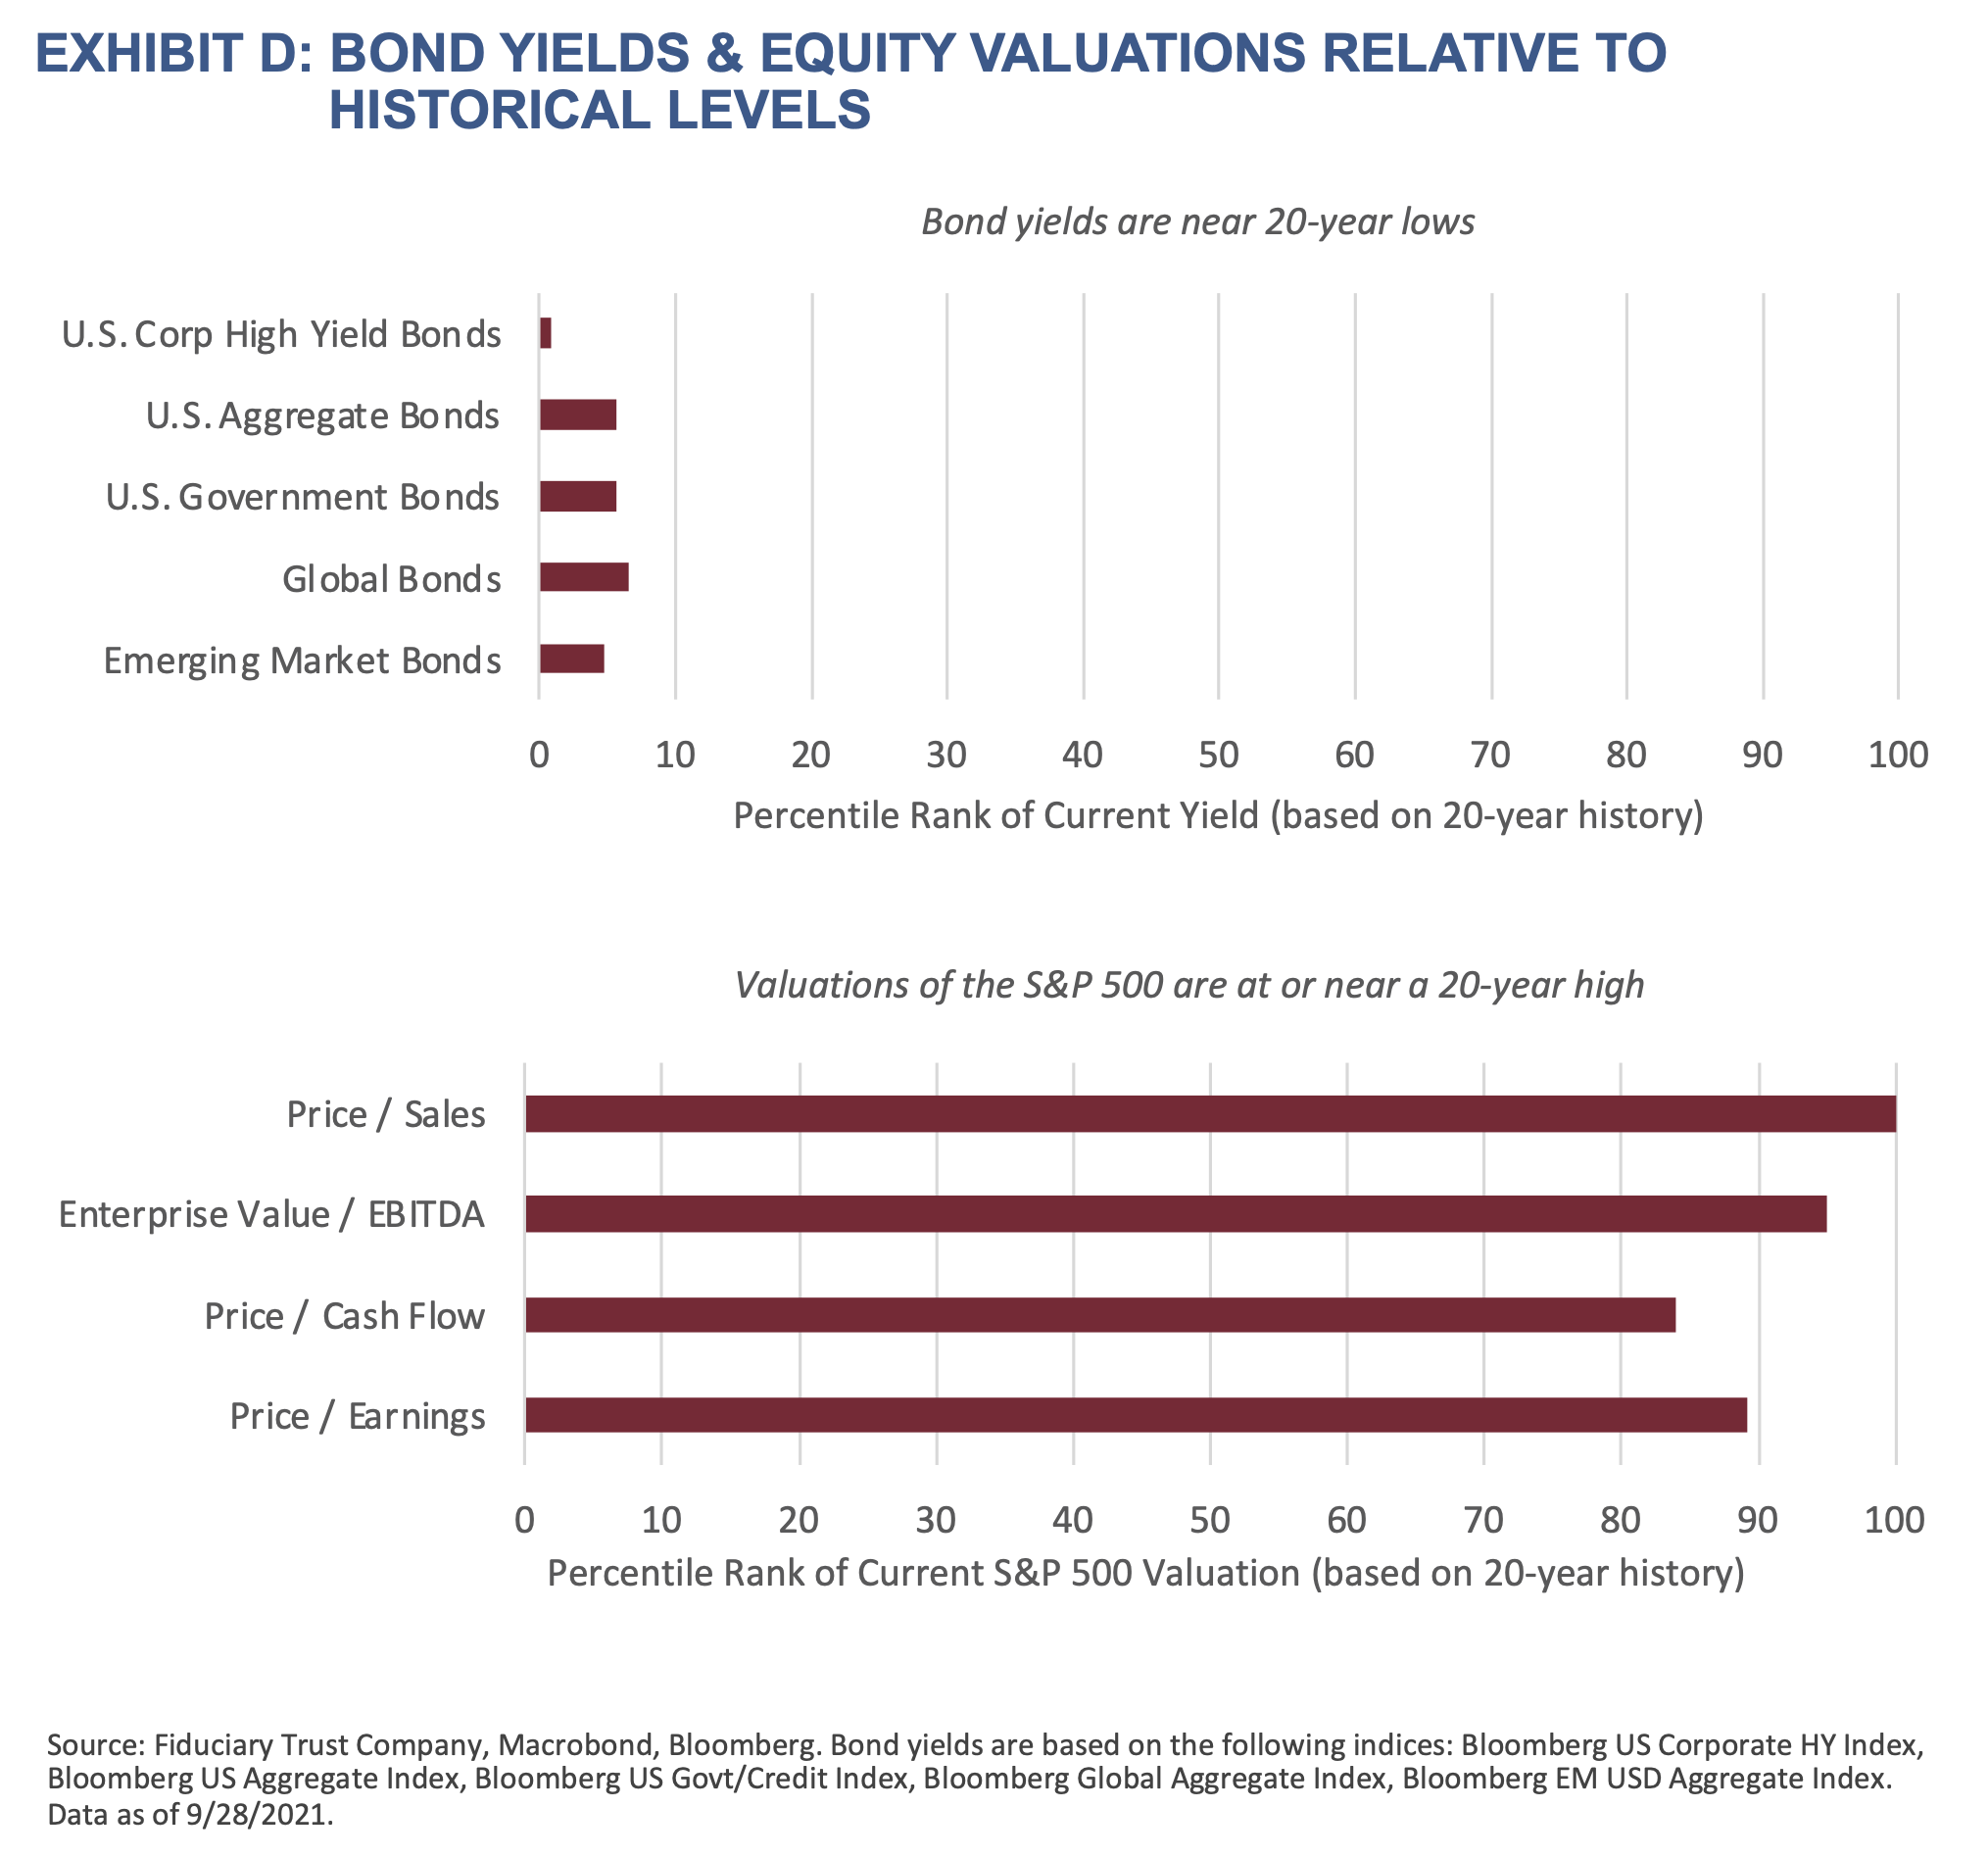 2021 Q4 Outlook-Exhibit D-Bond Yields & Equity Valuations Relative to Historical Levels